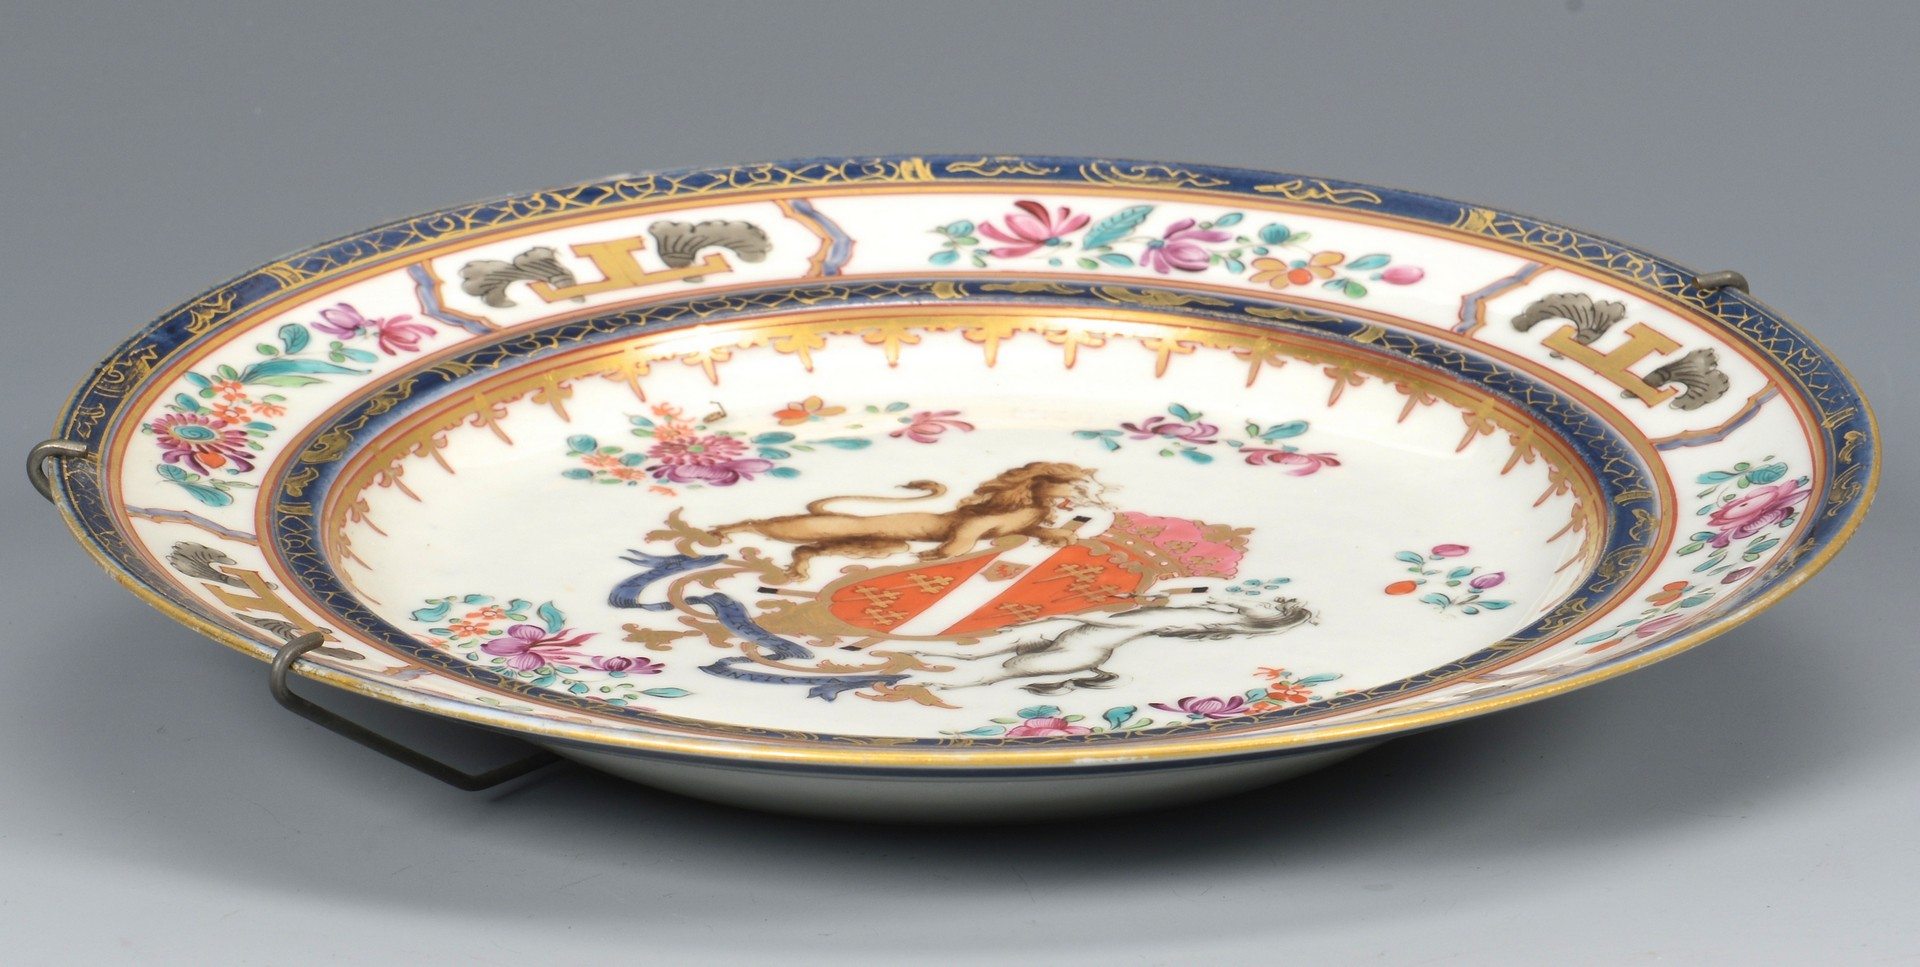 Lot 3832384: Large Japanese Imari Charger & Armorial Plate